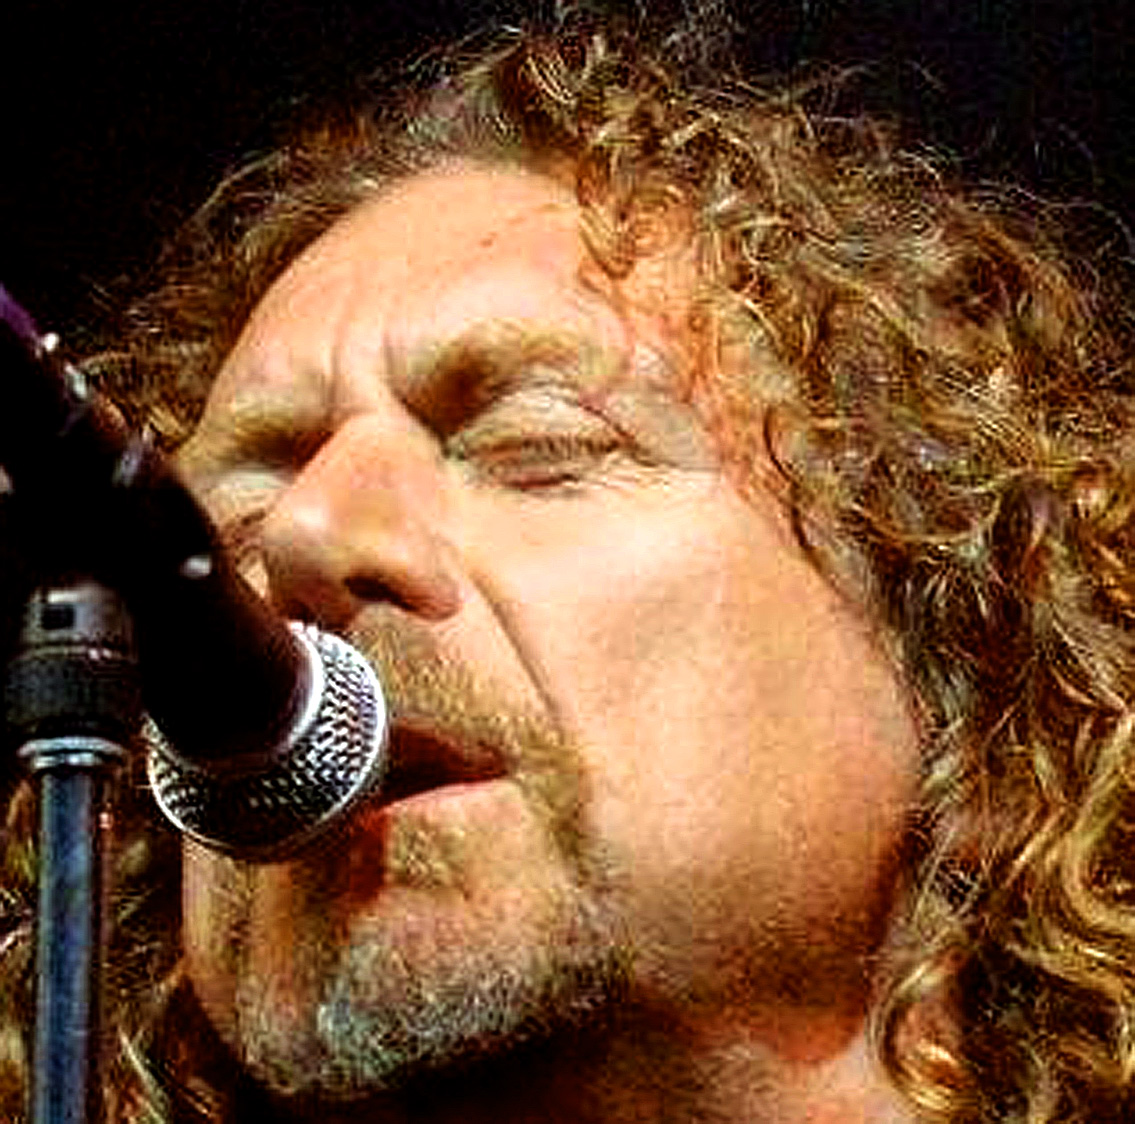 Robert Plant In Concert At Glastonbury 1993 – Past Daily Soundbooth